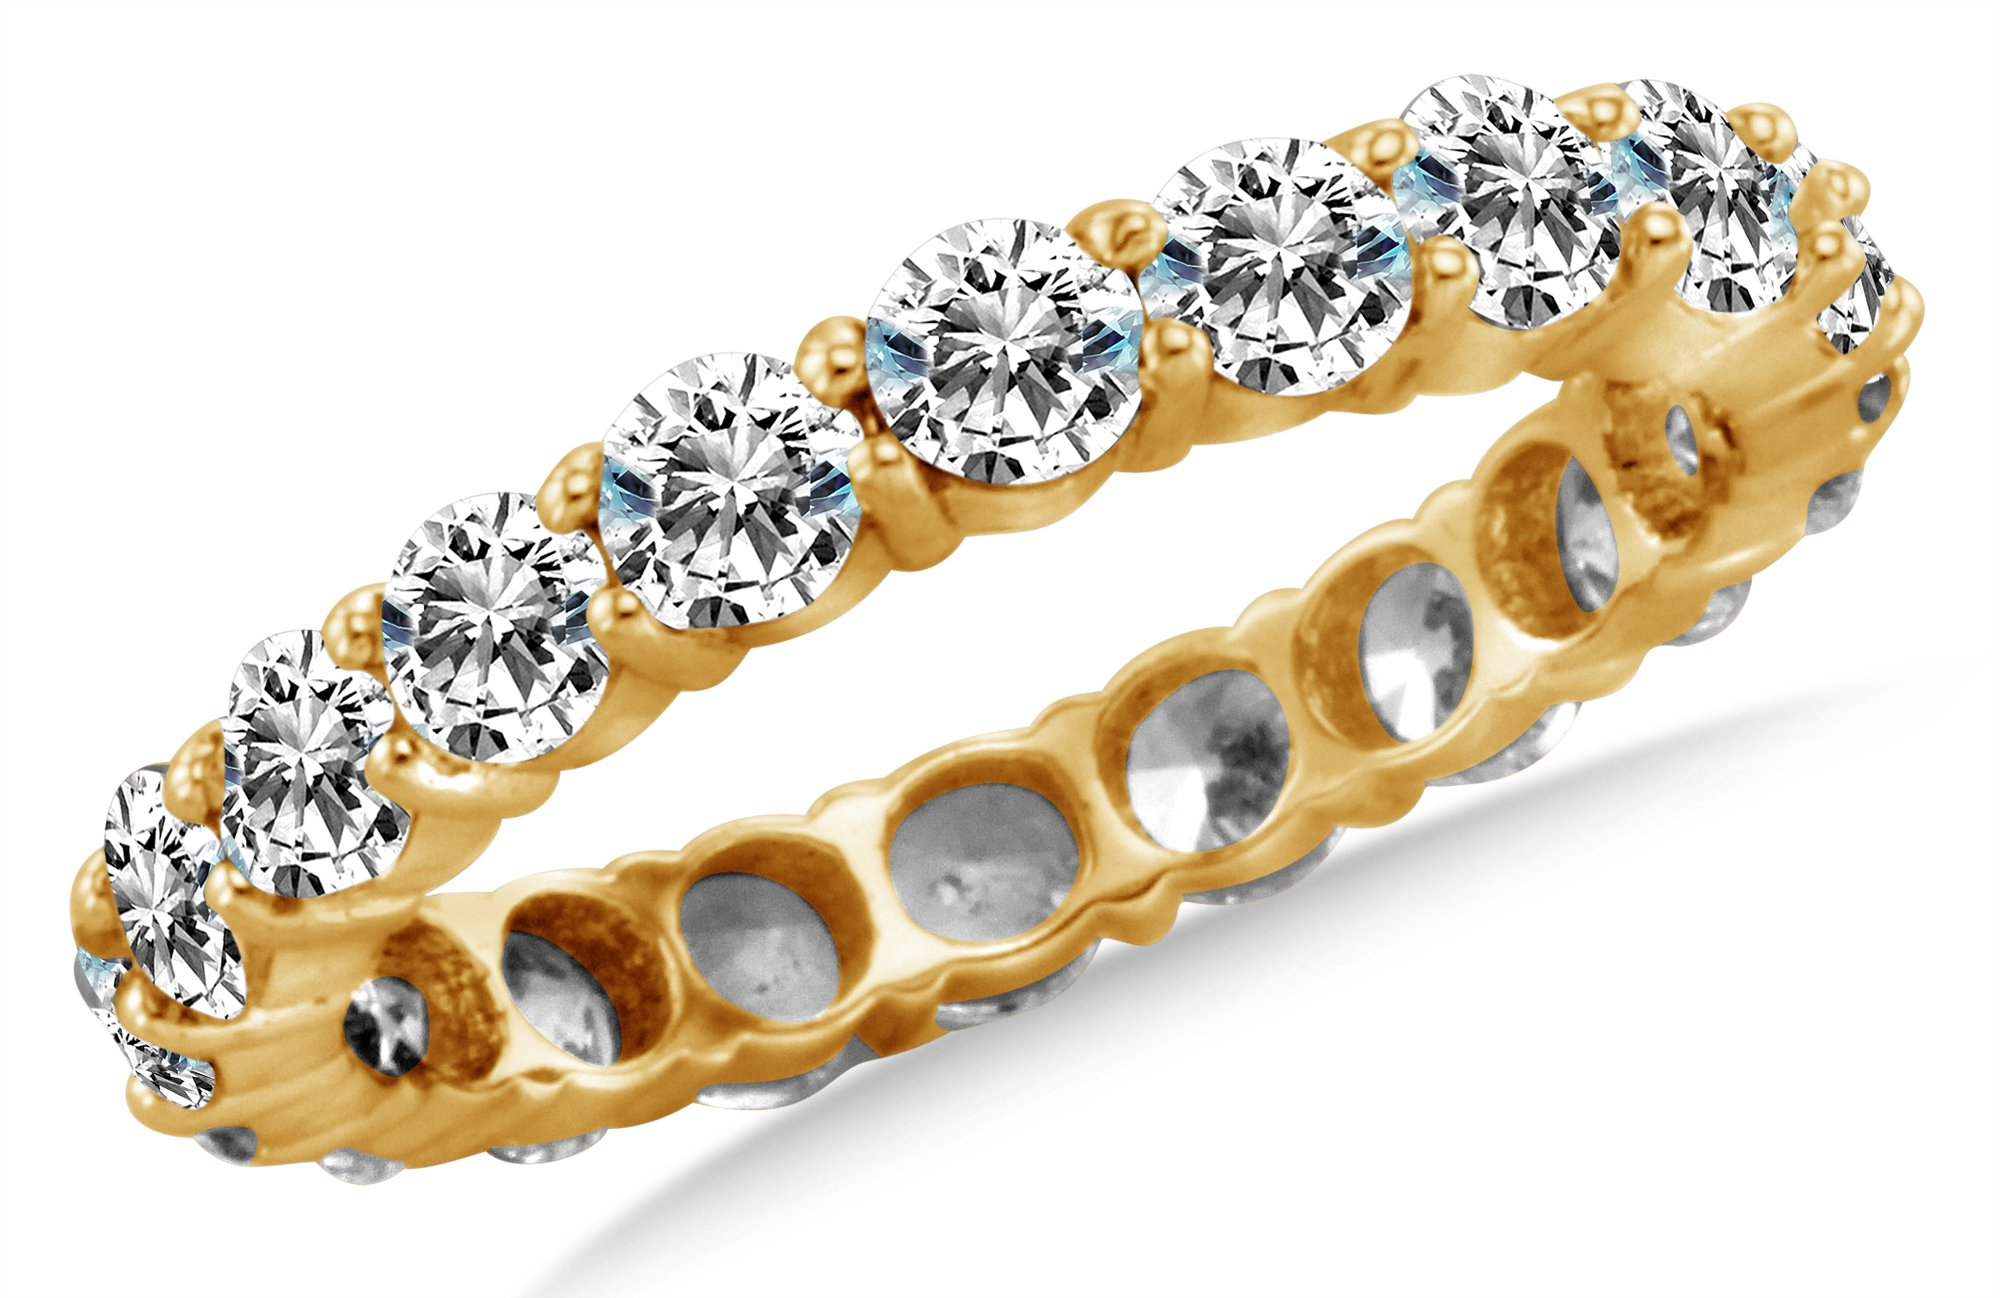 Size 5 - 4mm Solid 14K Yellow Gold Channel Set Round Brilliant Cut Highest Quality CZ Cubic Zirconia Eternity Anniversary or Wedding Ring Band (Available in sizes 5 , 6 , 7 & 8)